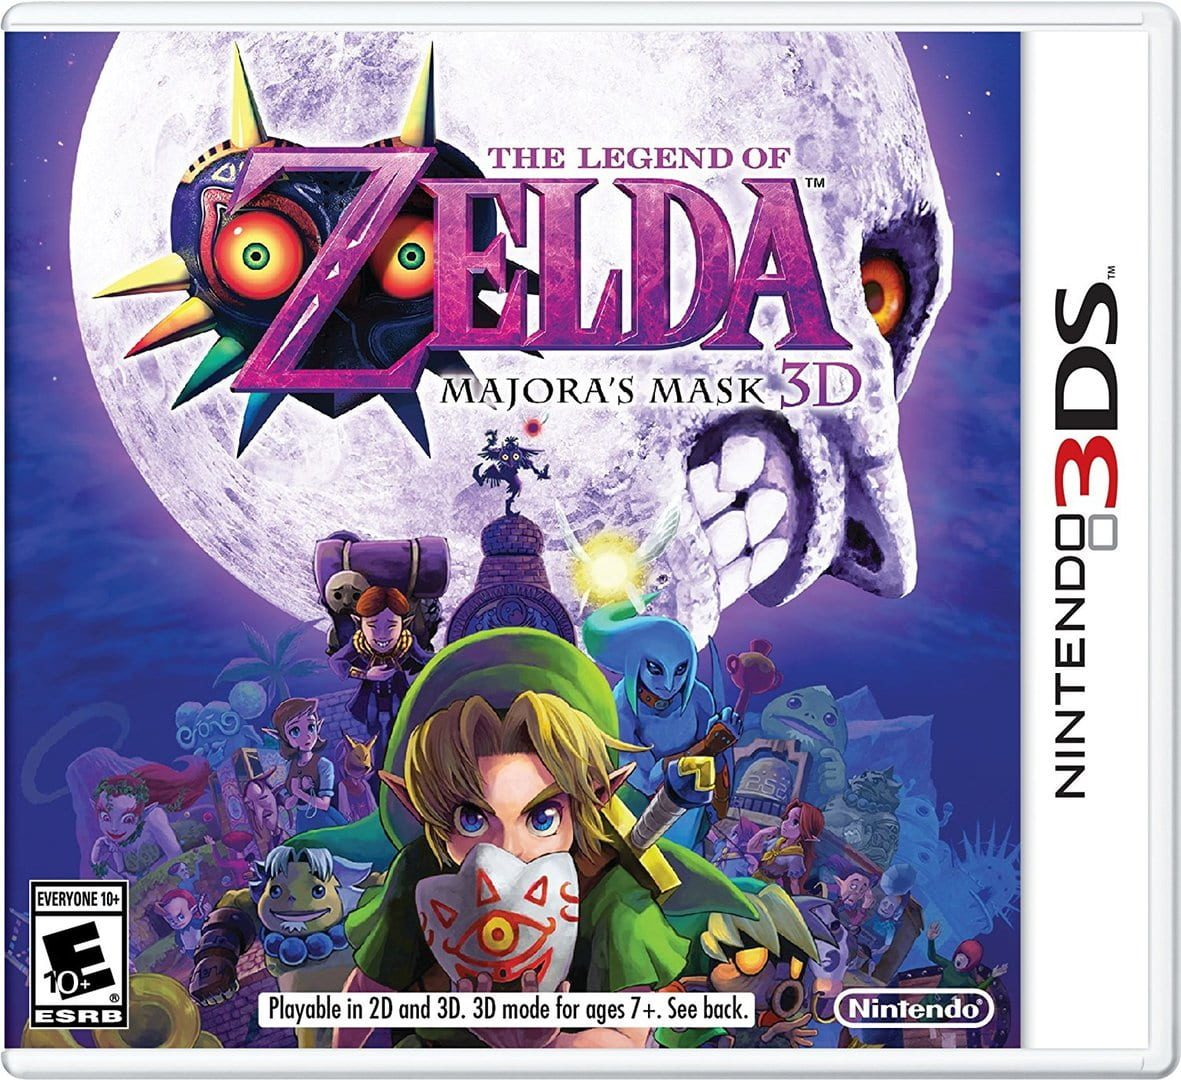 buy The Legend of Zelda: Majora's Mask 3D cd key for all platform